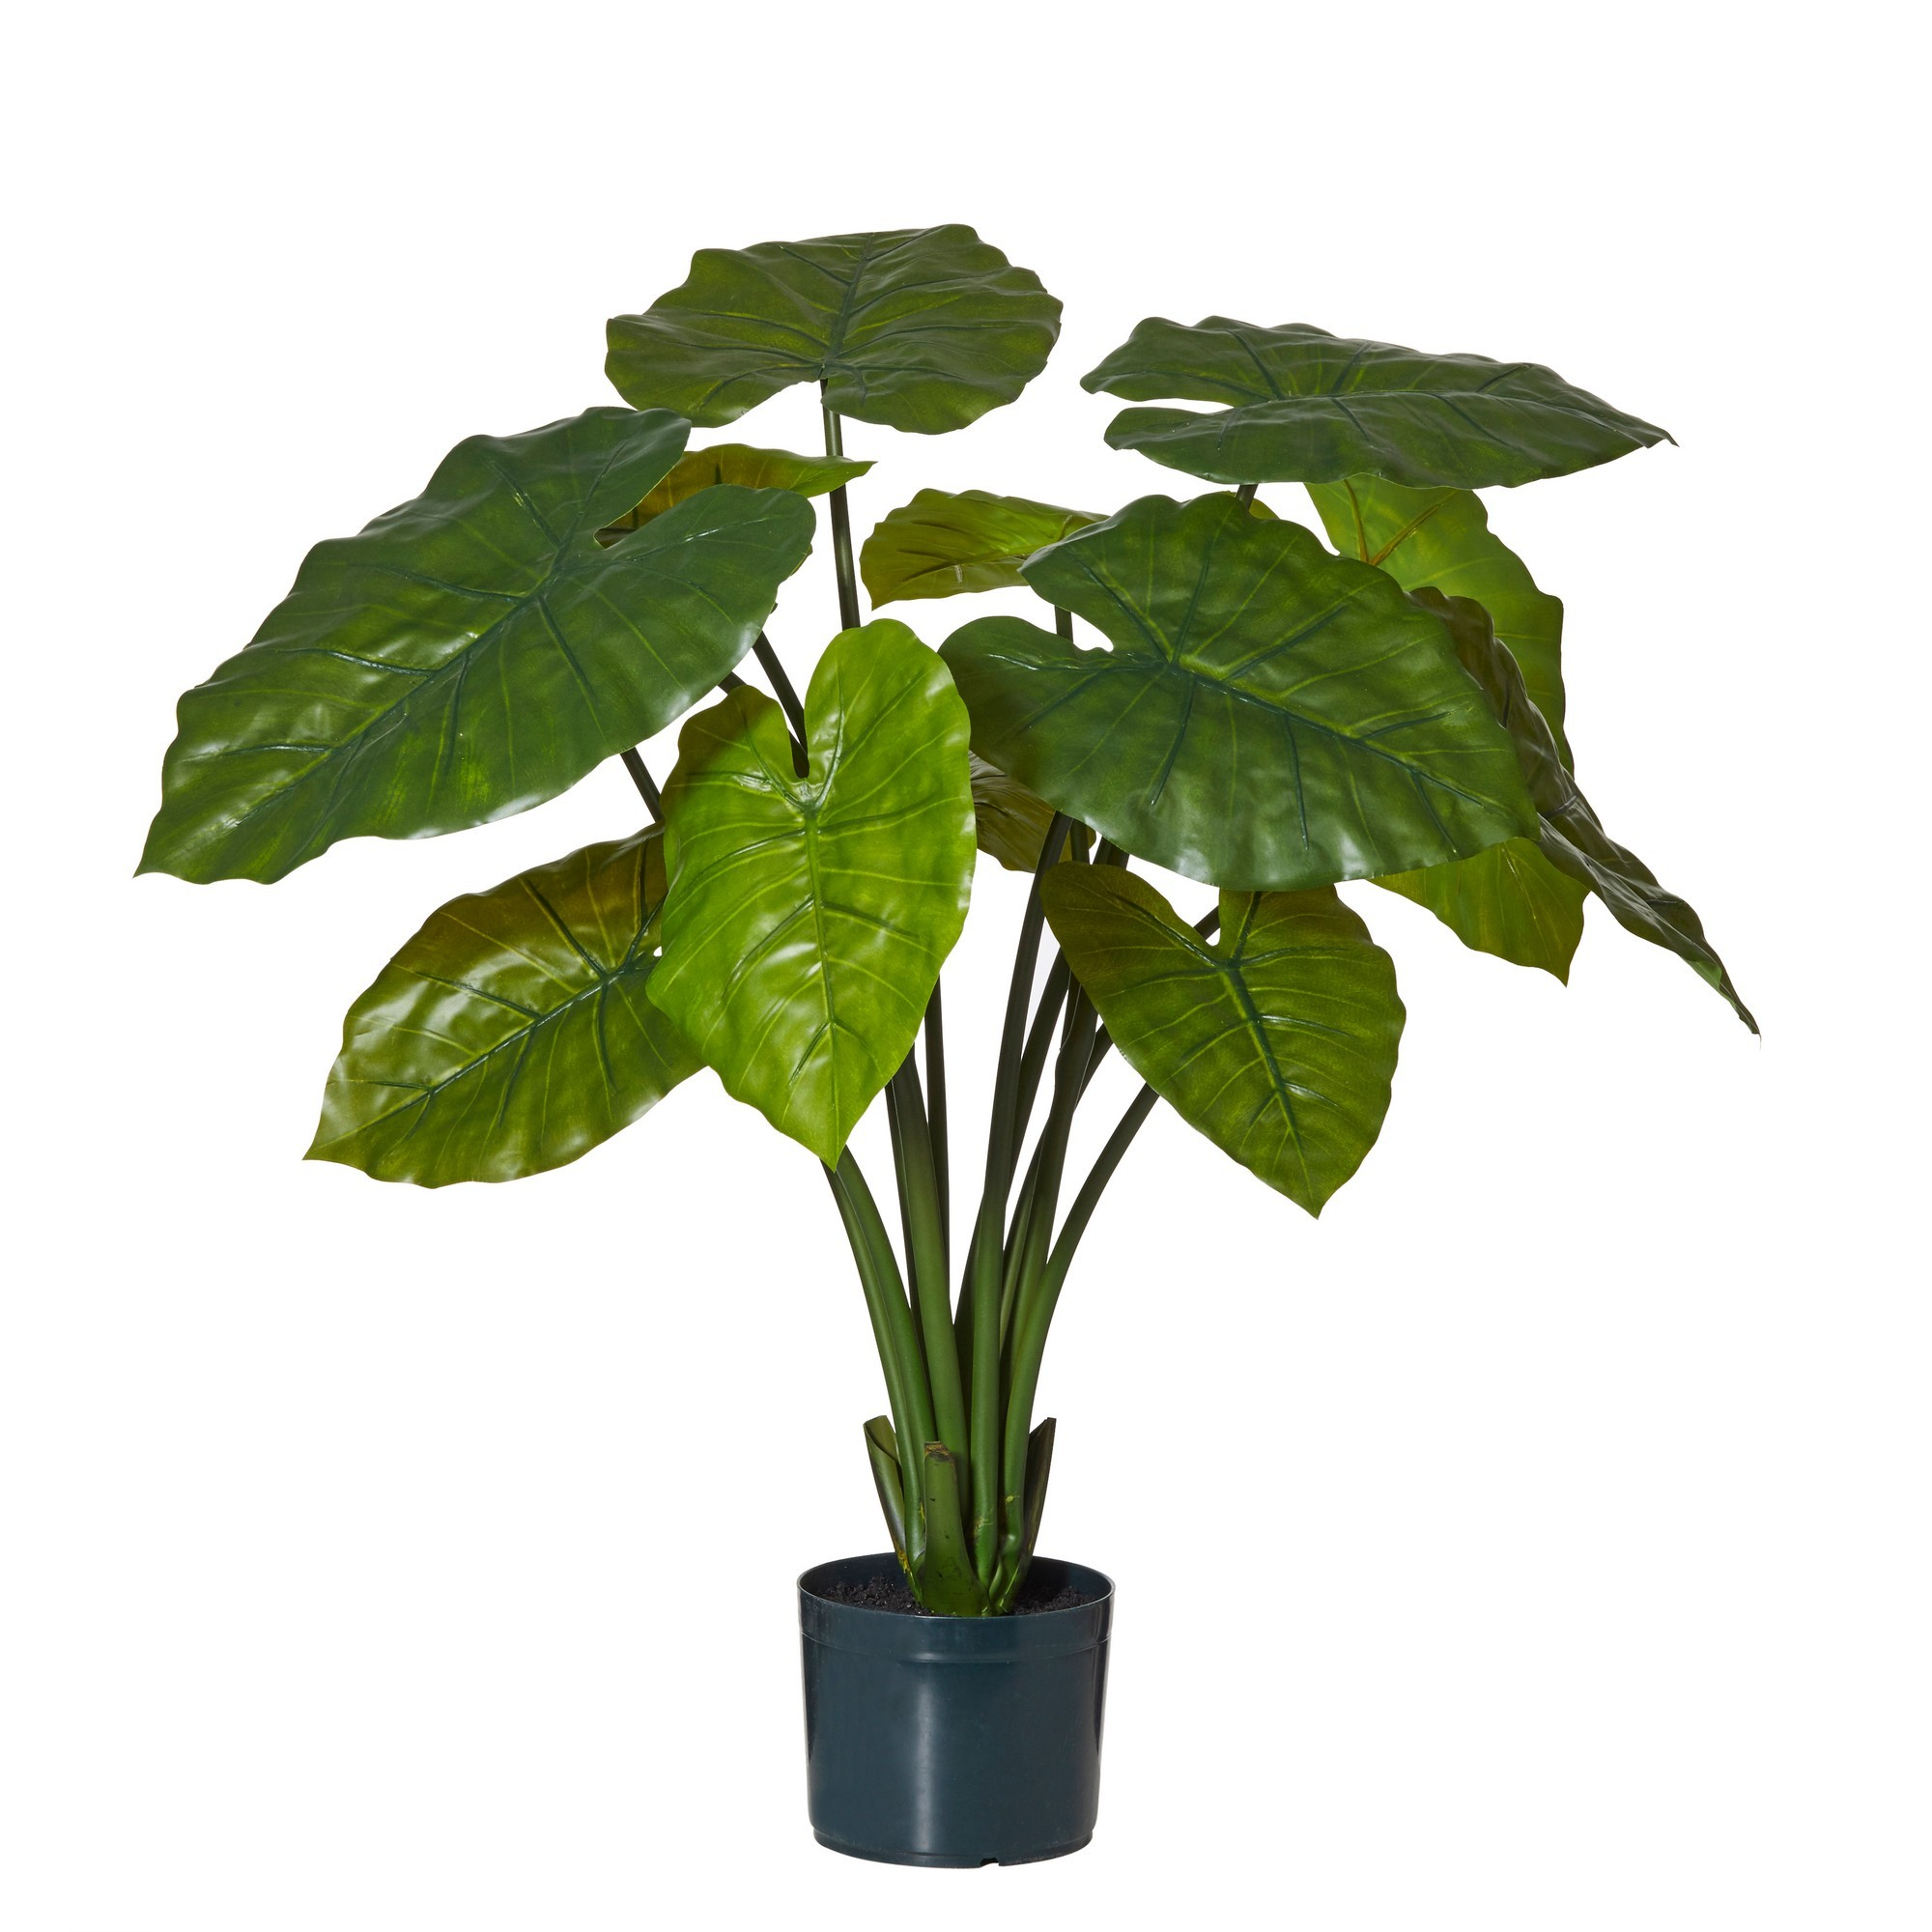 Potted Artificial Wild Taro Plant, 97cm